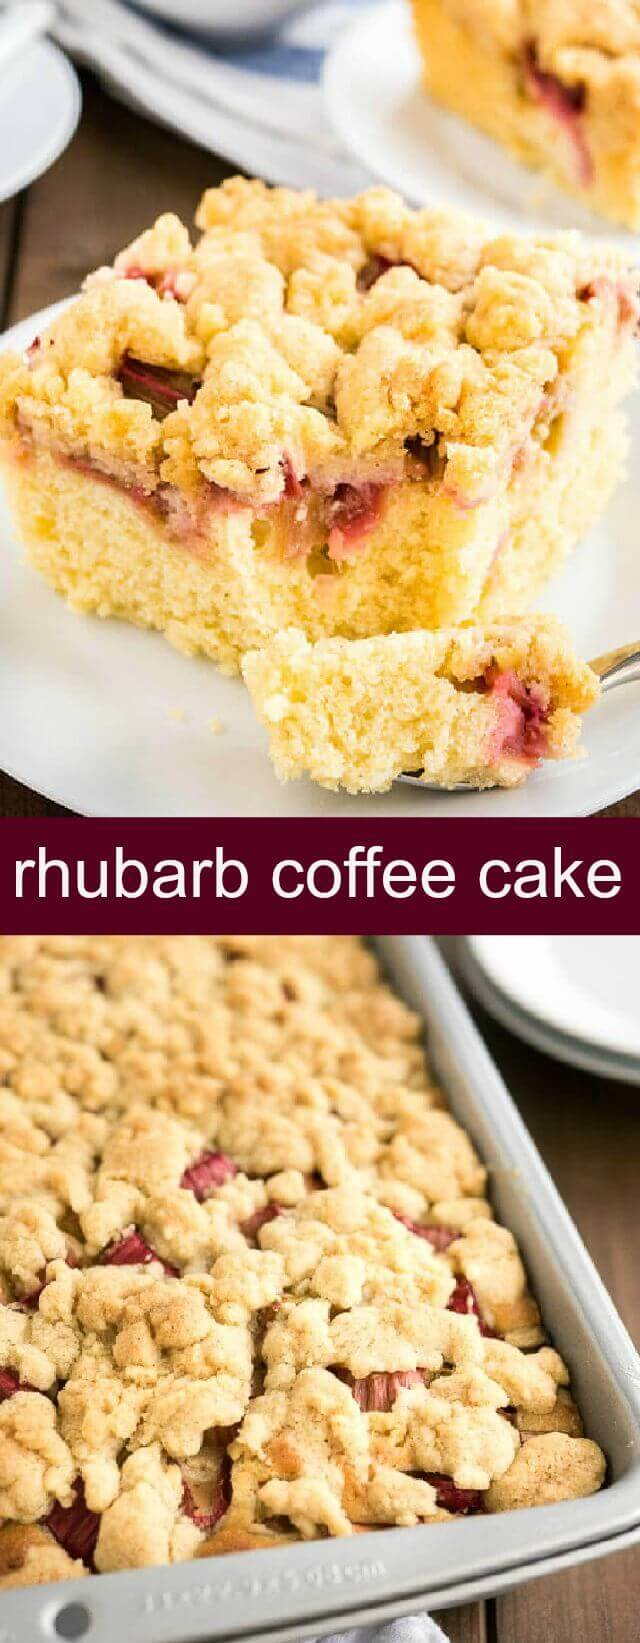 Rhubarb Coffee Cake {A Juicy Delicious Coffee Cake} rhubarb/cake/coffee cake This Rhubarb Coffee Cake is topped with crunchy streusel and studded with rhubarb! An easy-to-make sheet cake recipe that's perfect for spring and summer.